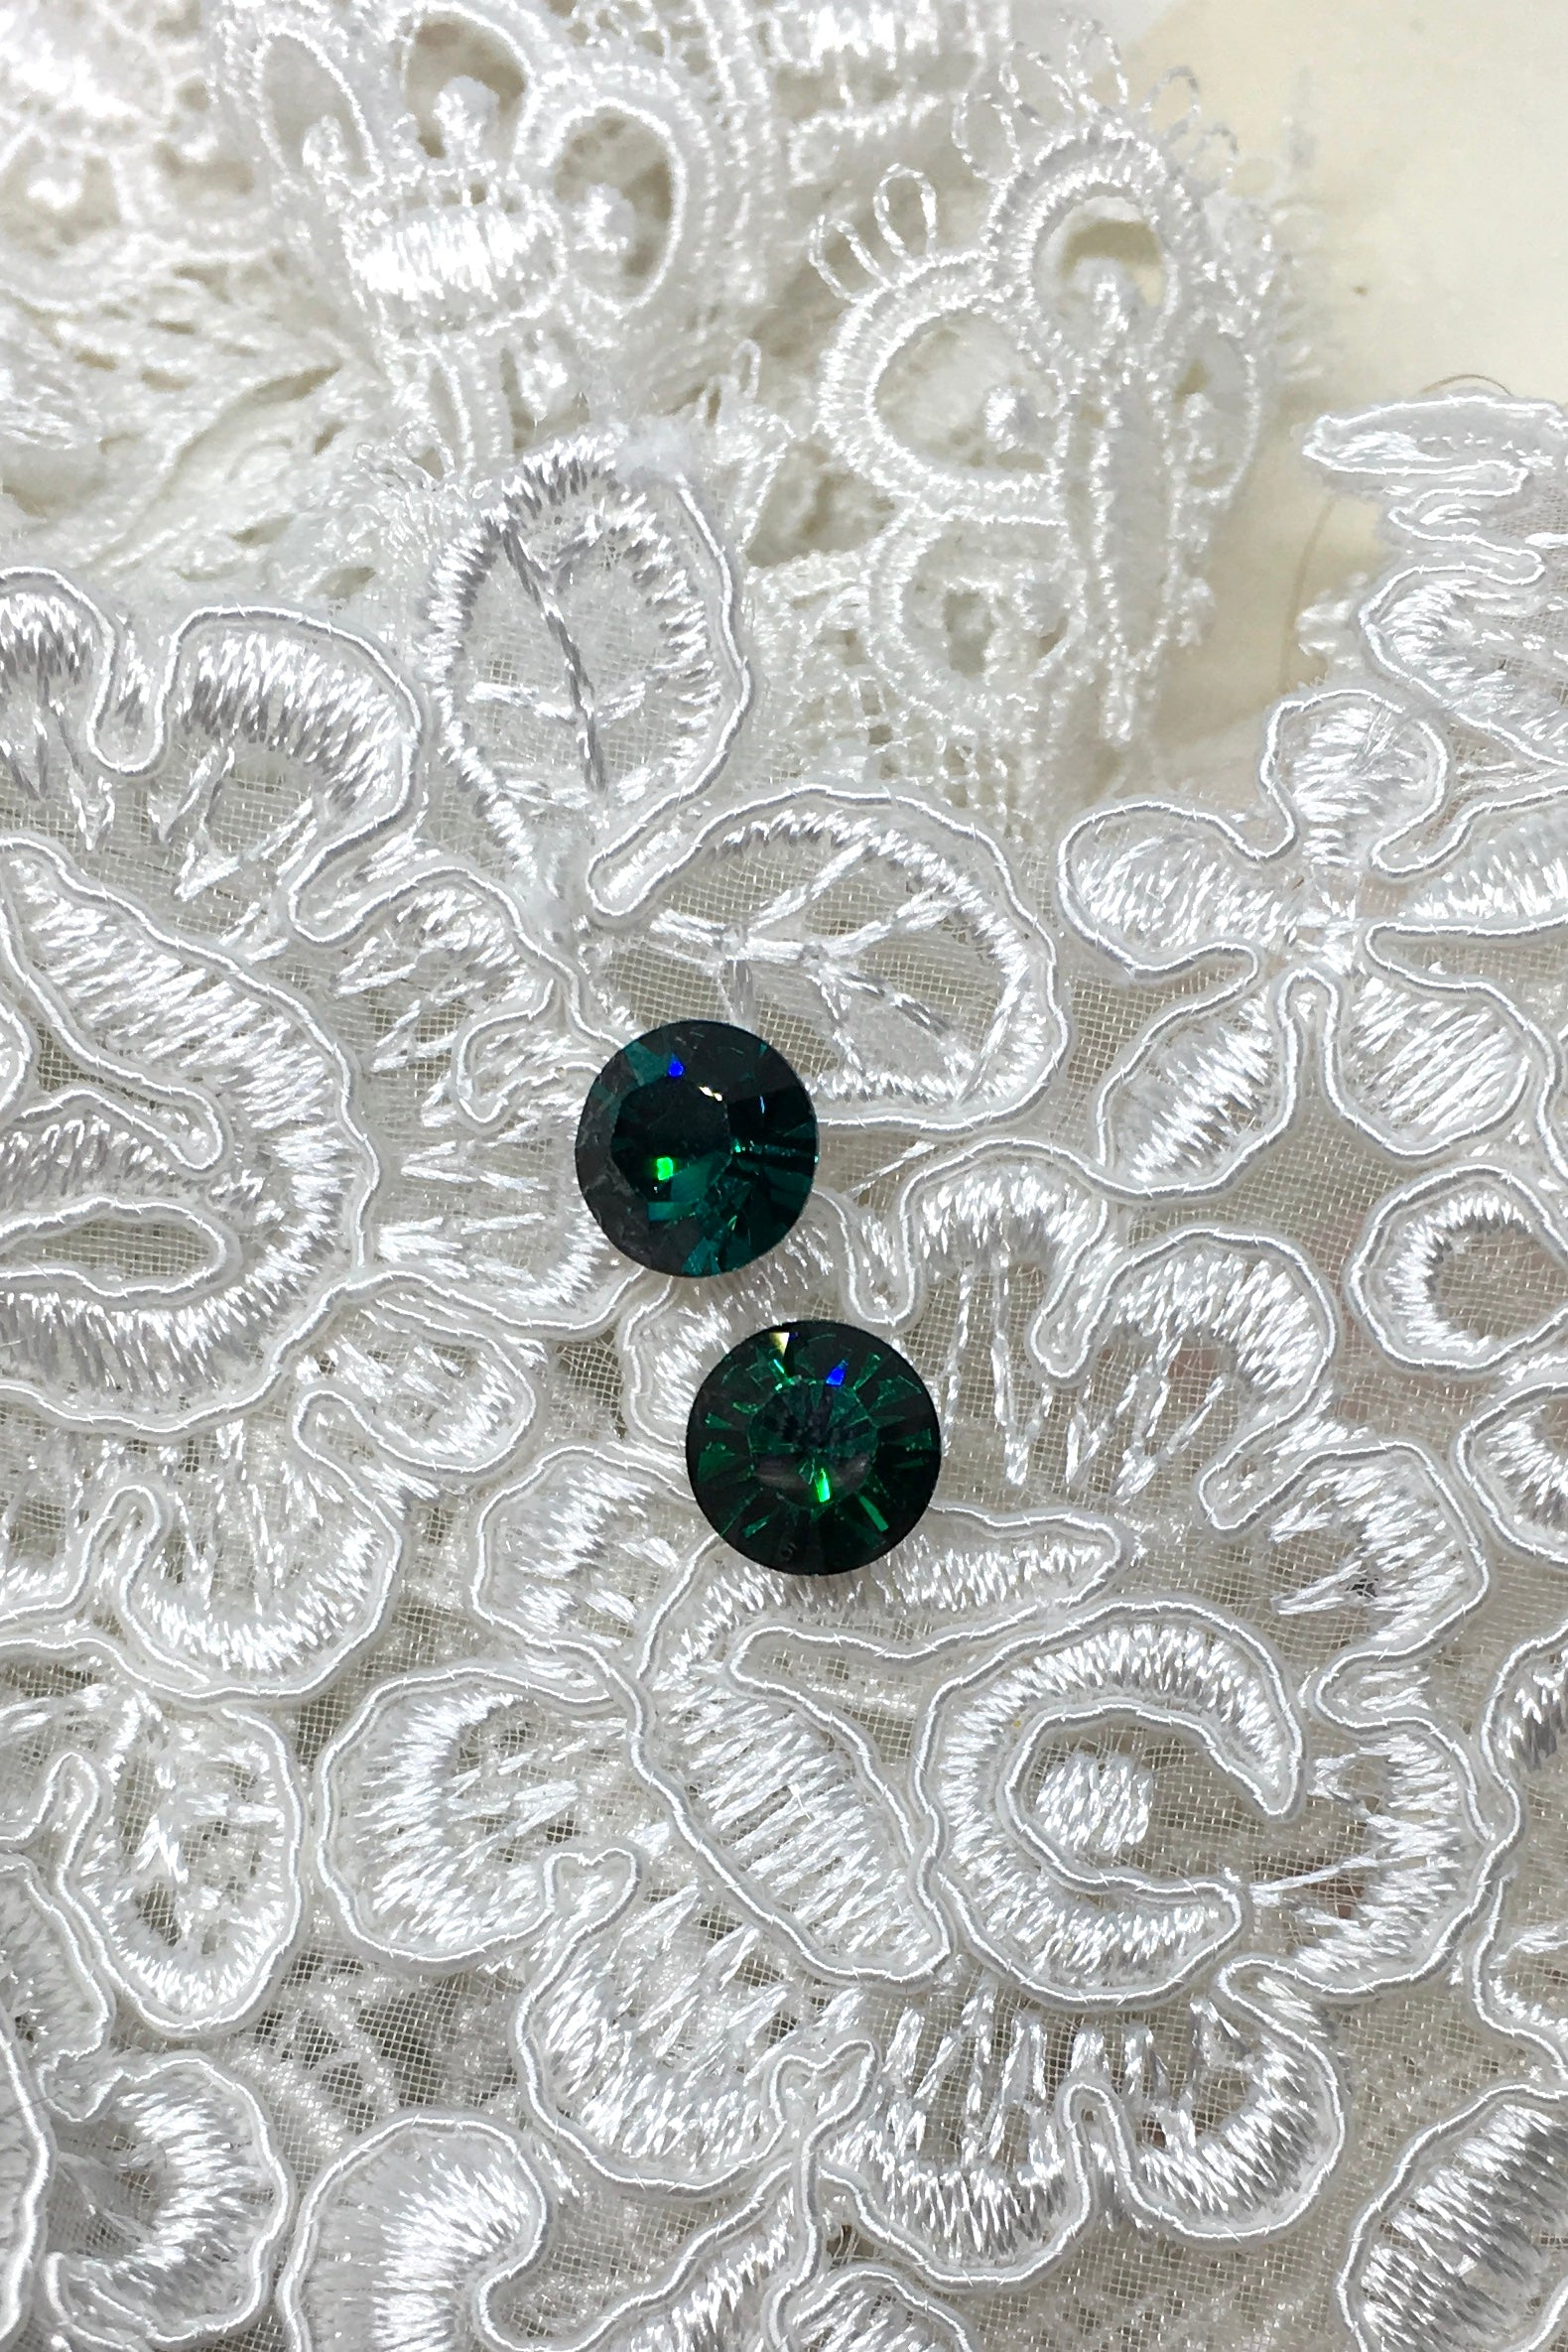 Earrings Crystal Stud, Swarovski Crystal sparkly stud earrings, in green and Montana Blue, wedding and bridesmaids style